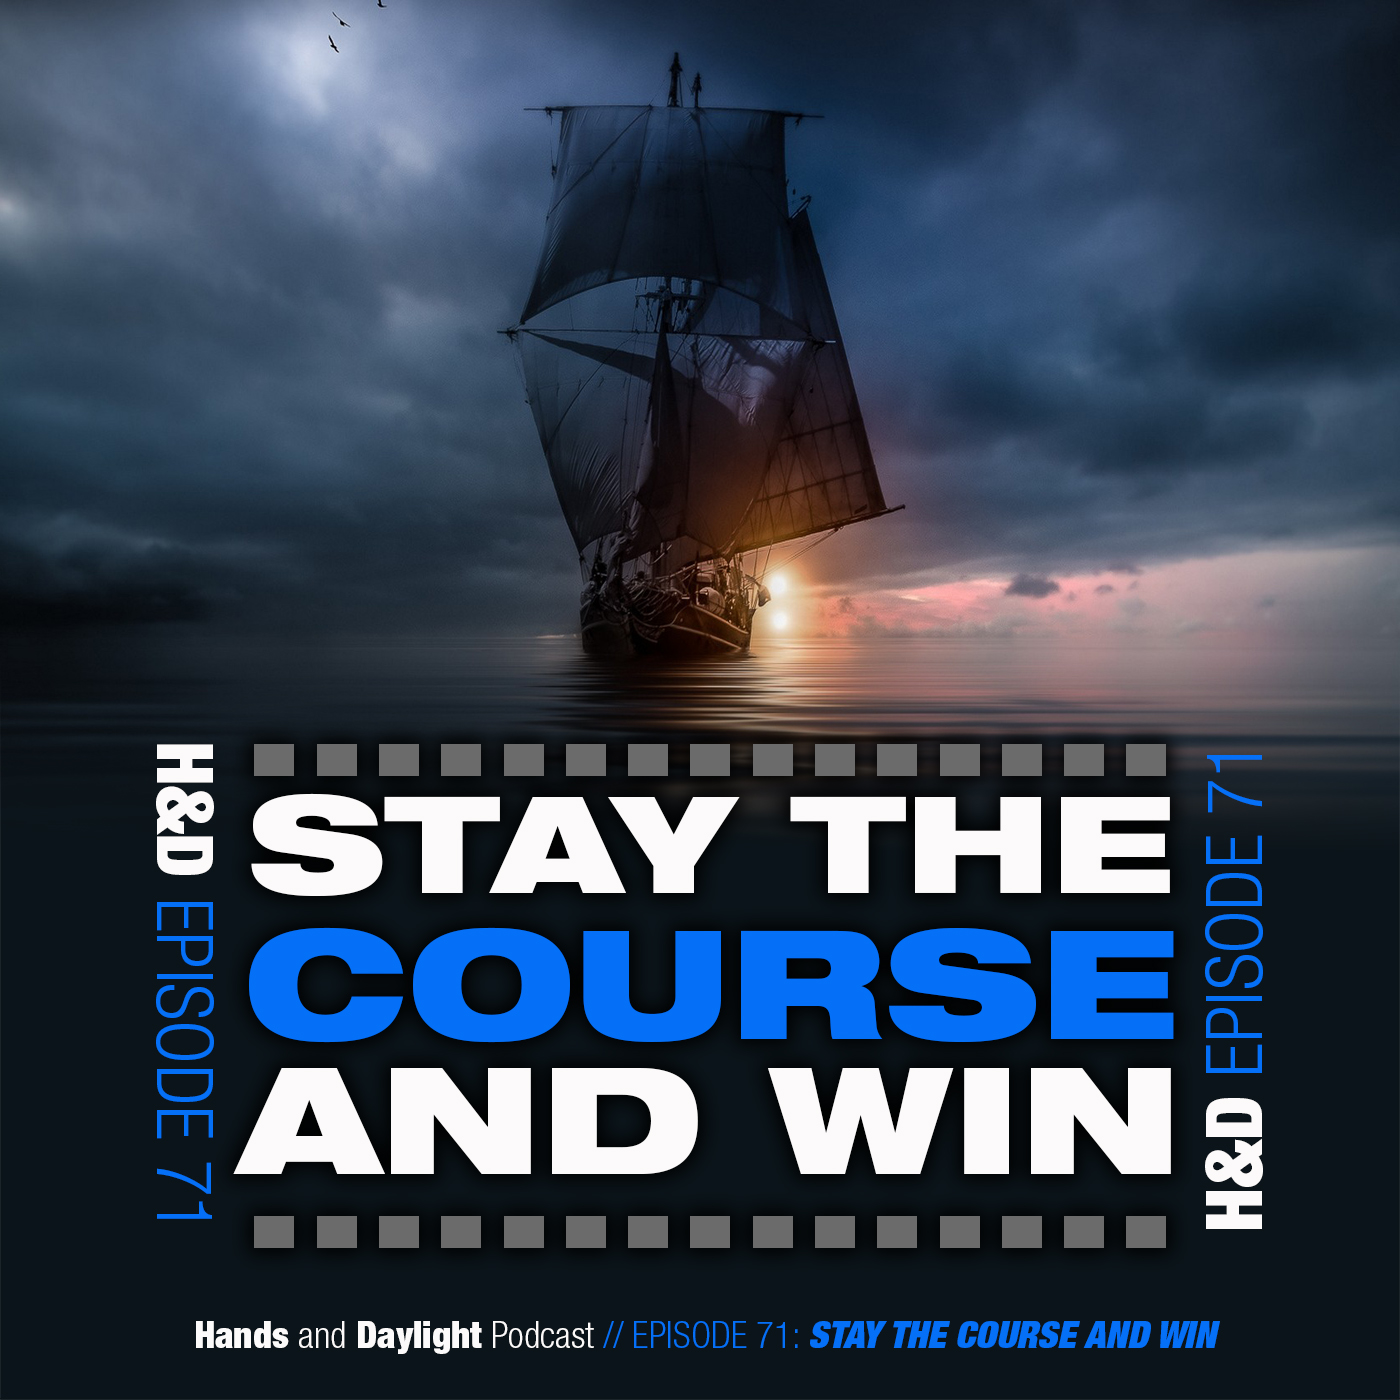 E71: STAY THE COURSE AND WIN